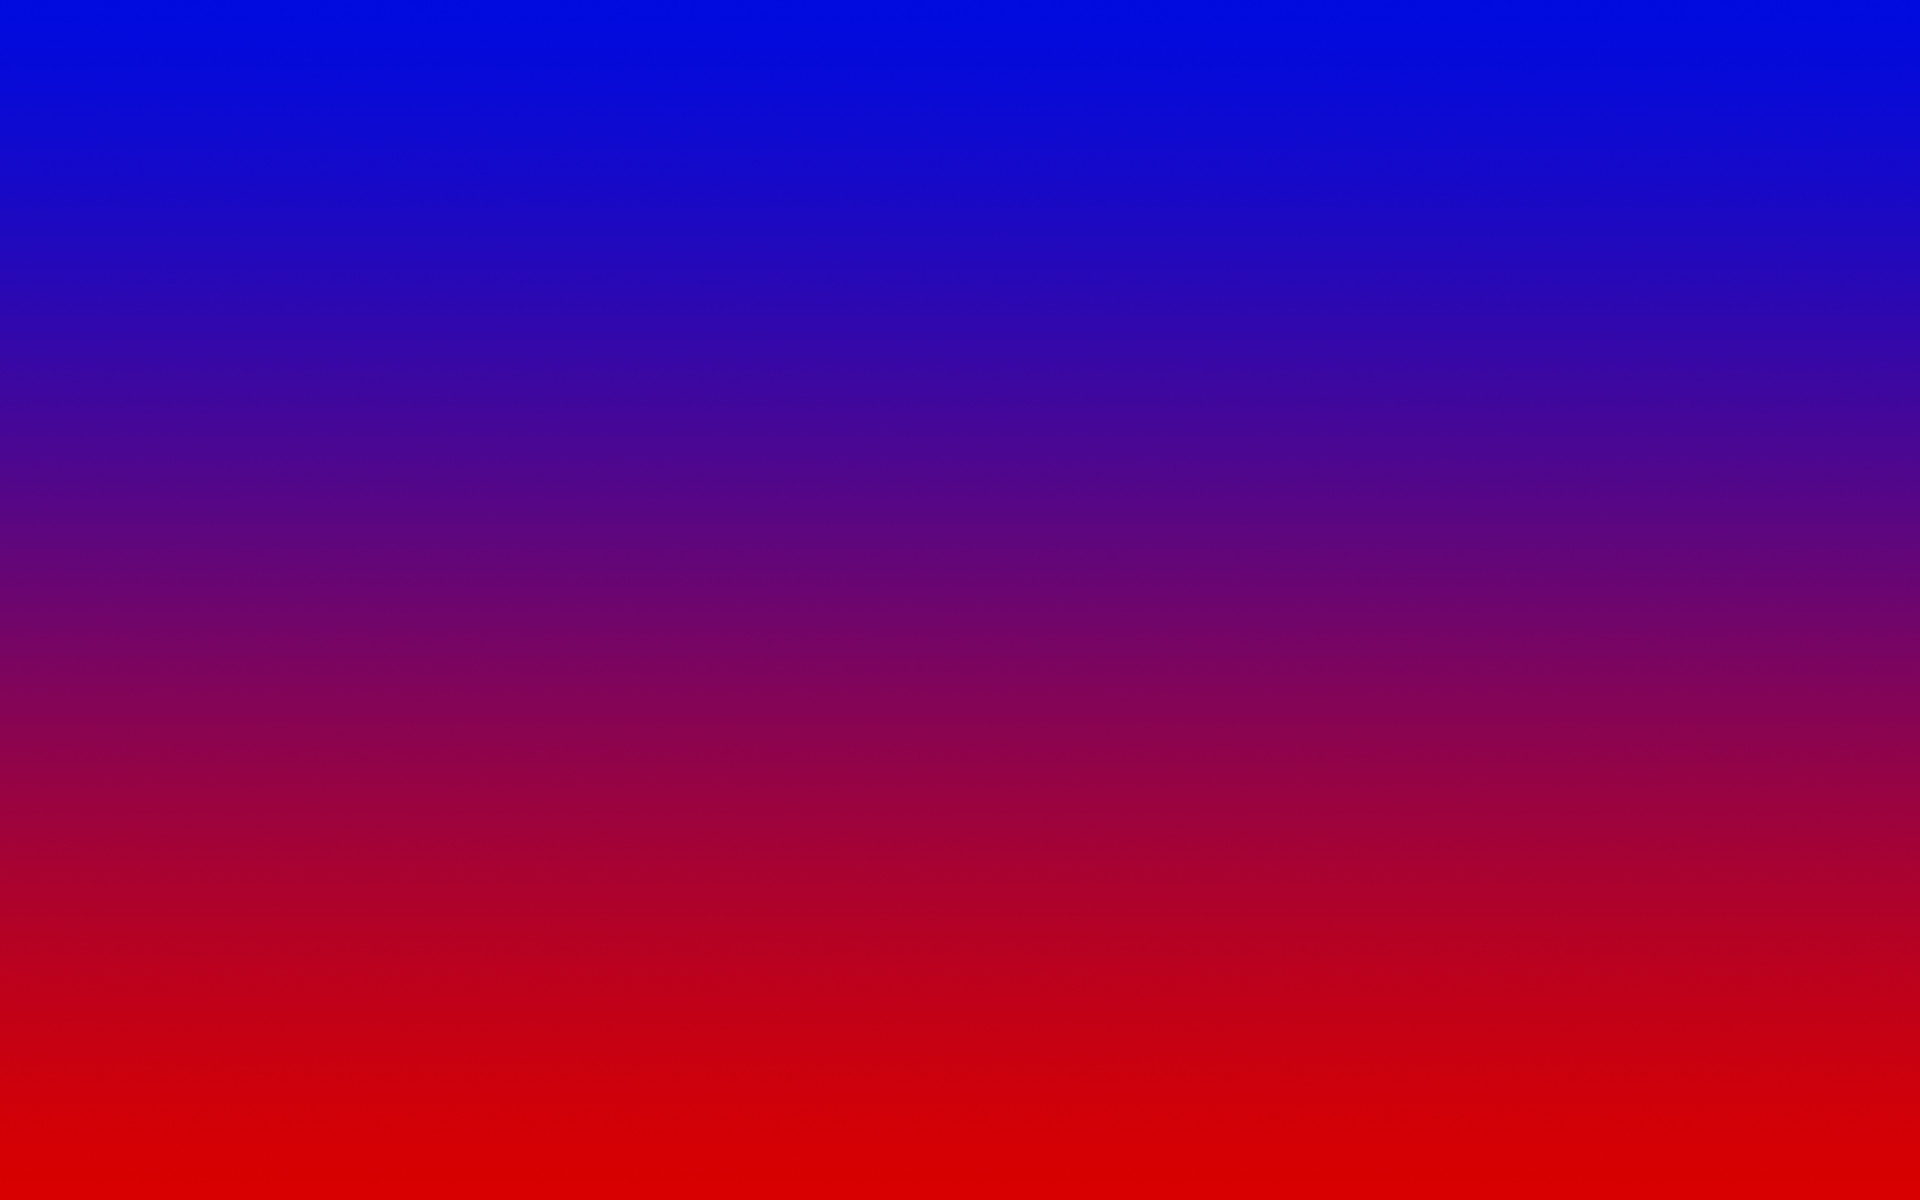 Blue and Red Gradient Wallpaper 58835